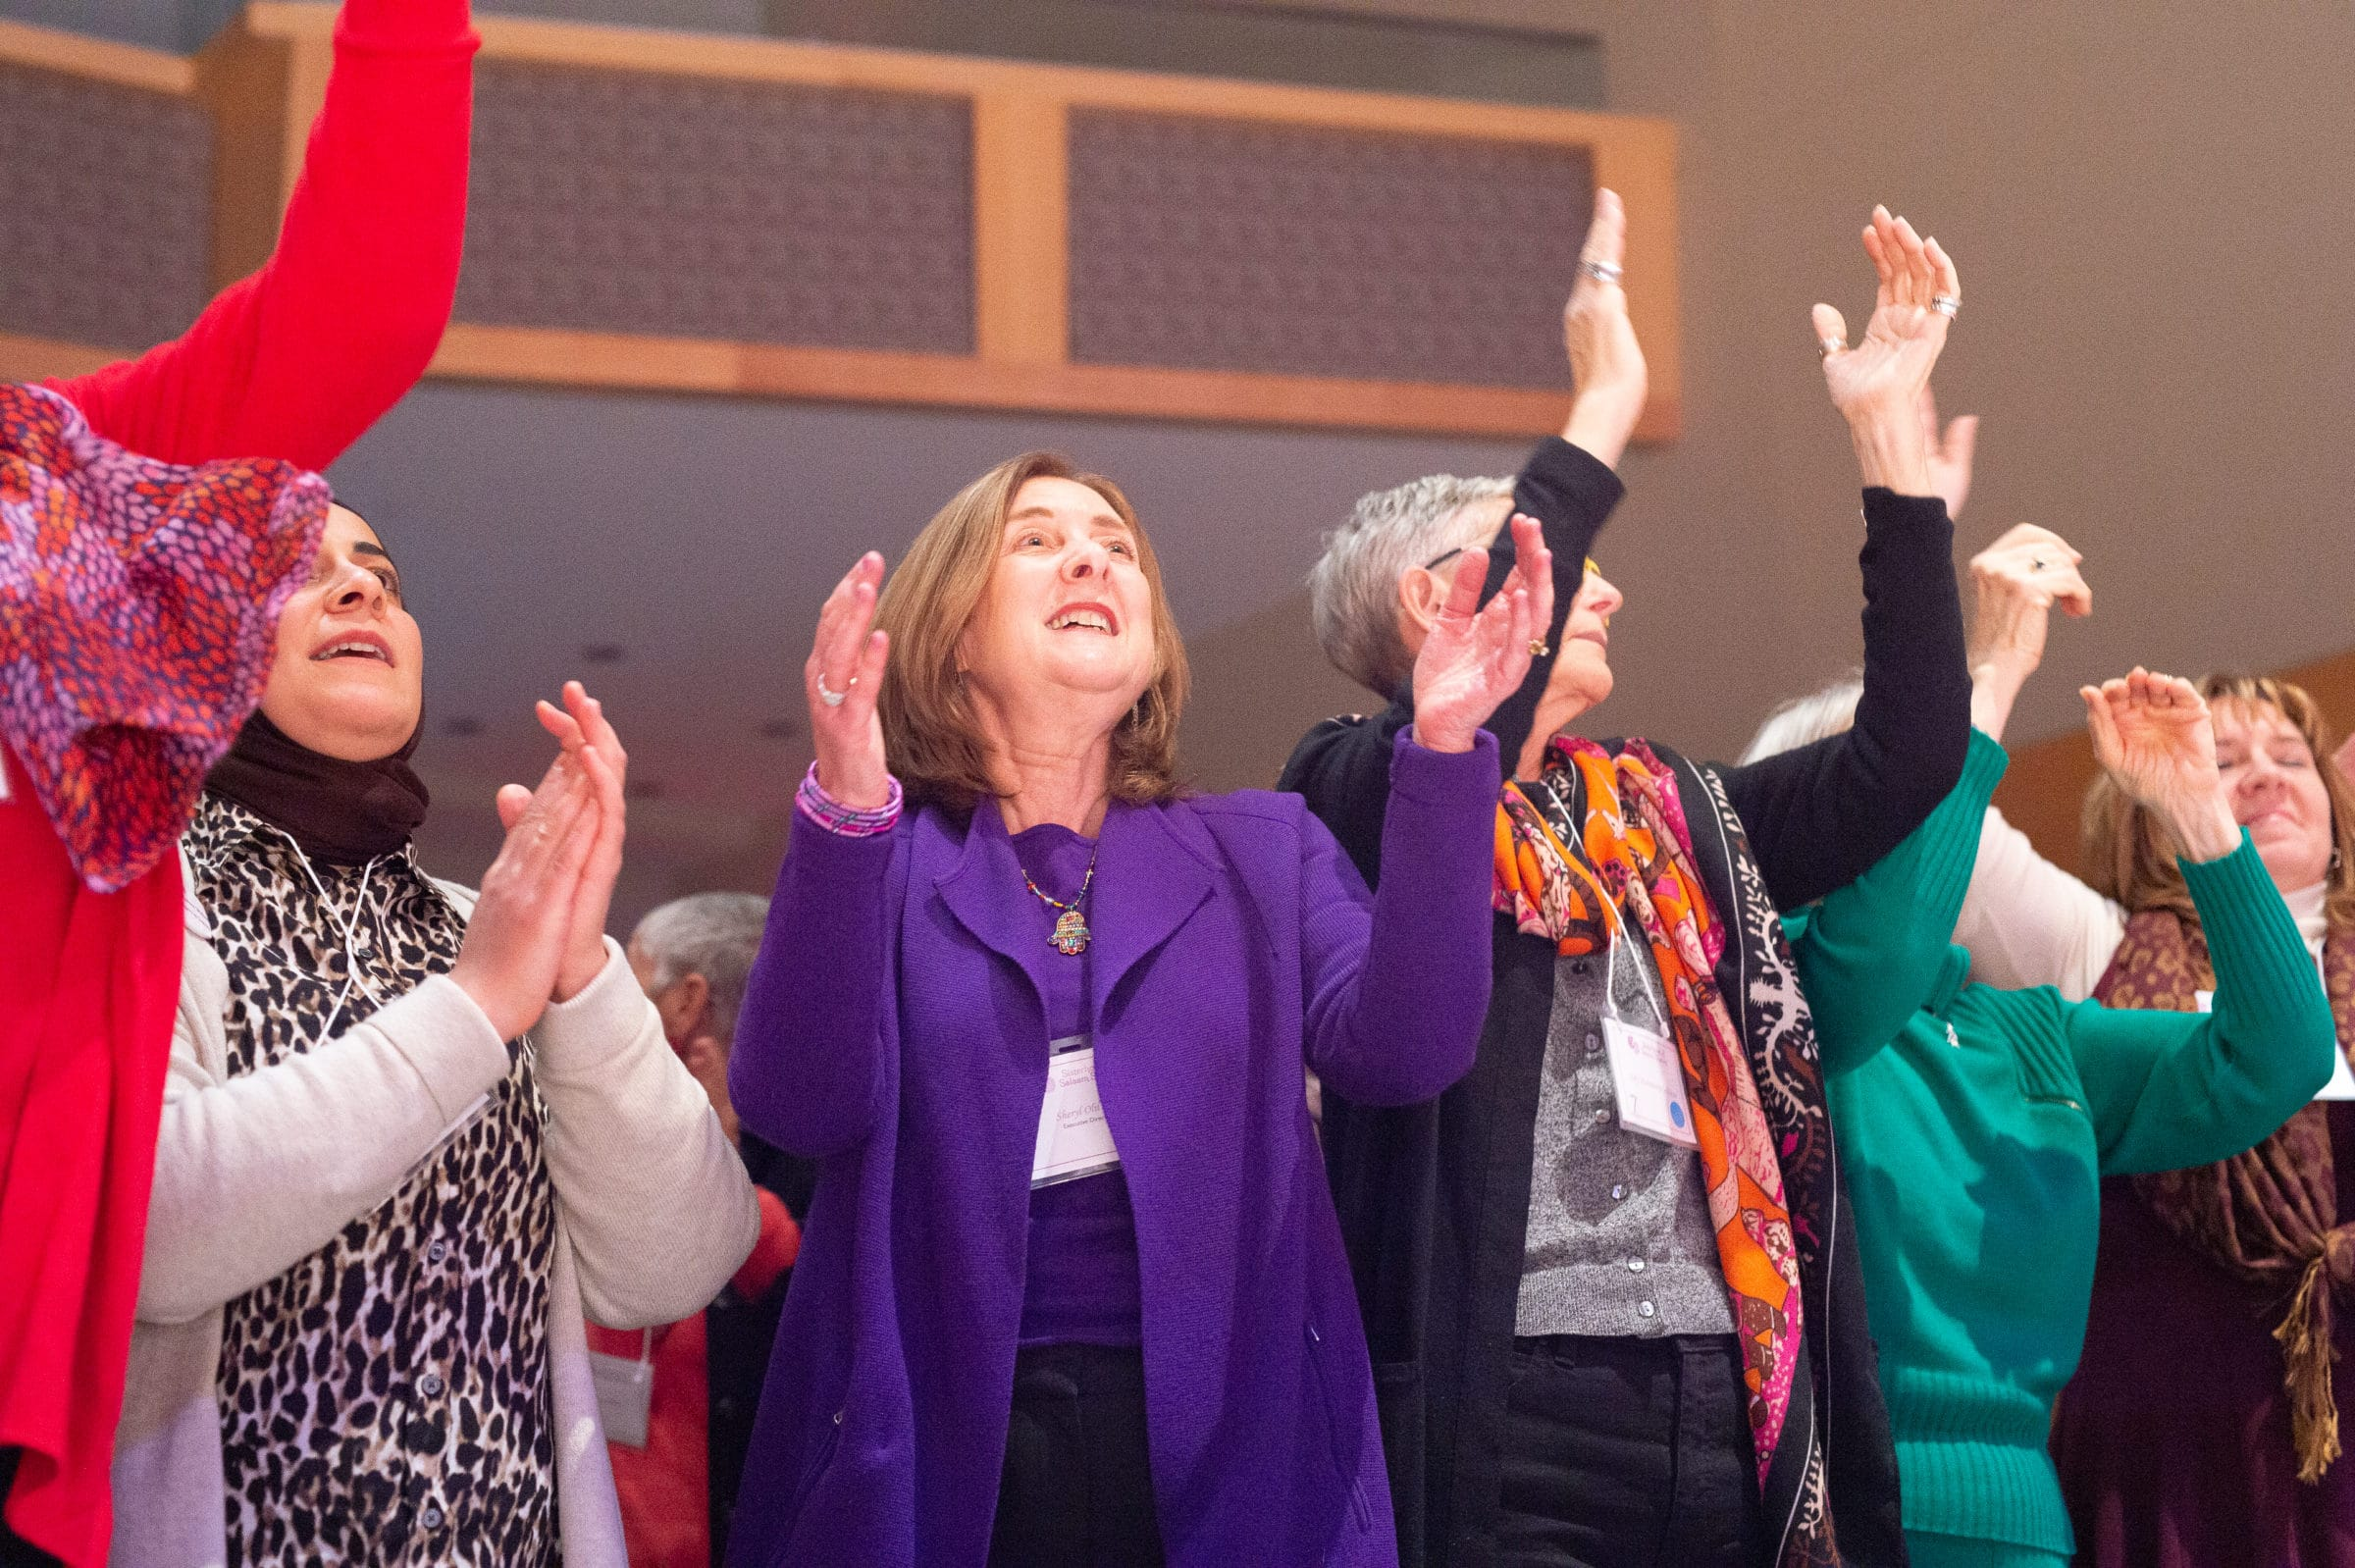 women clapping in song